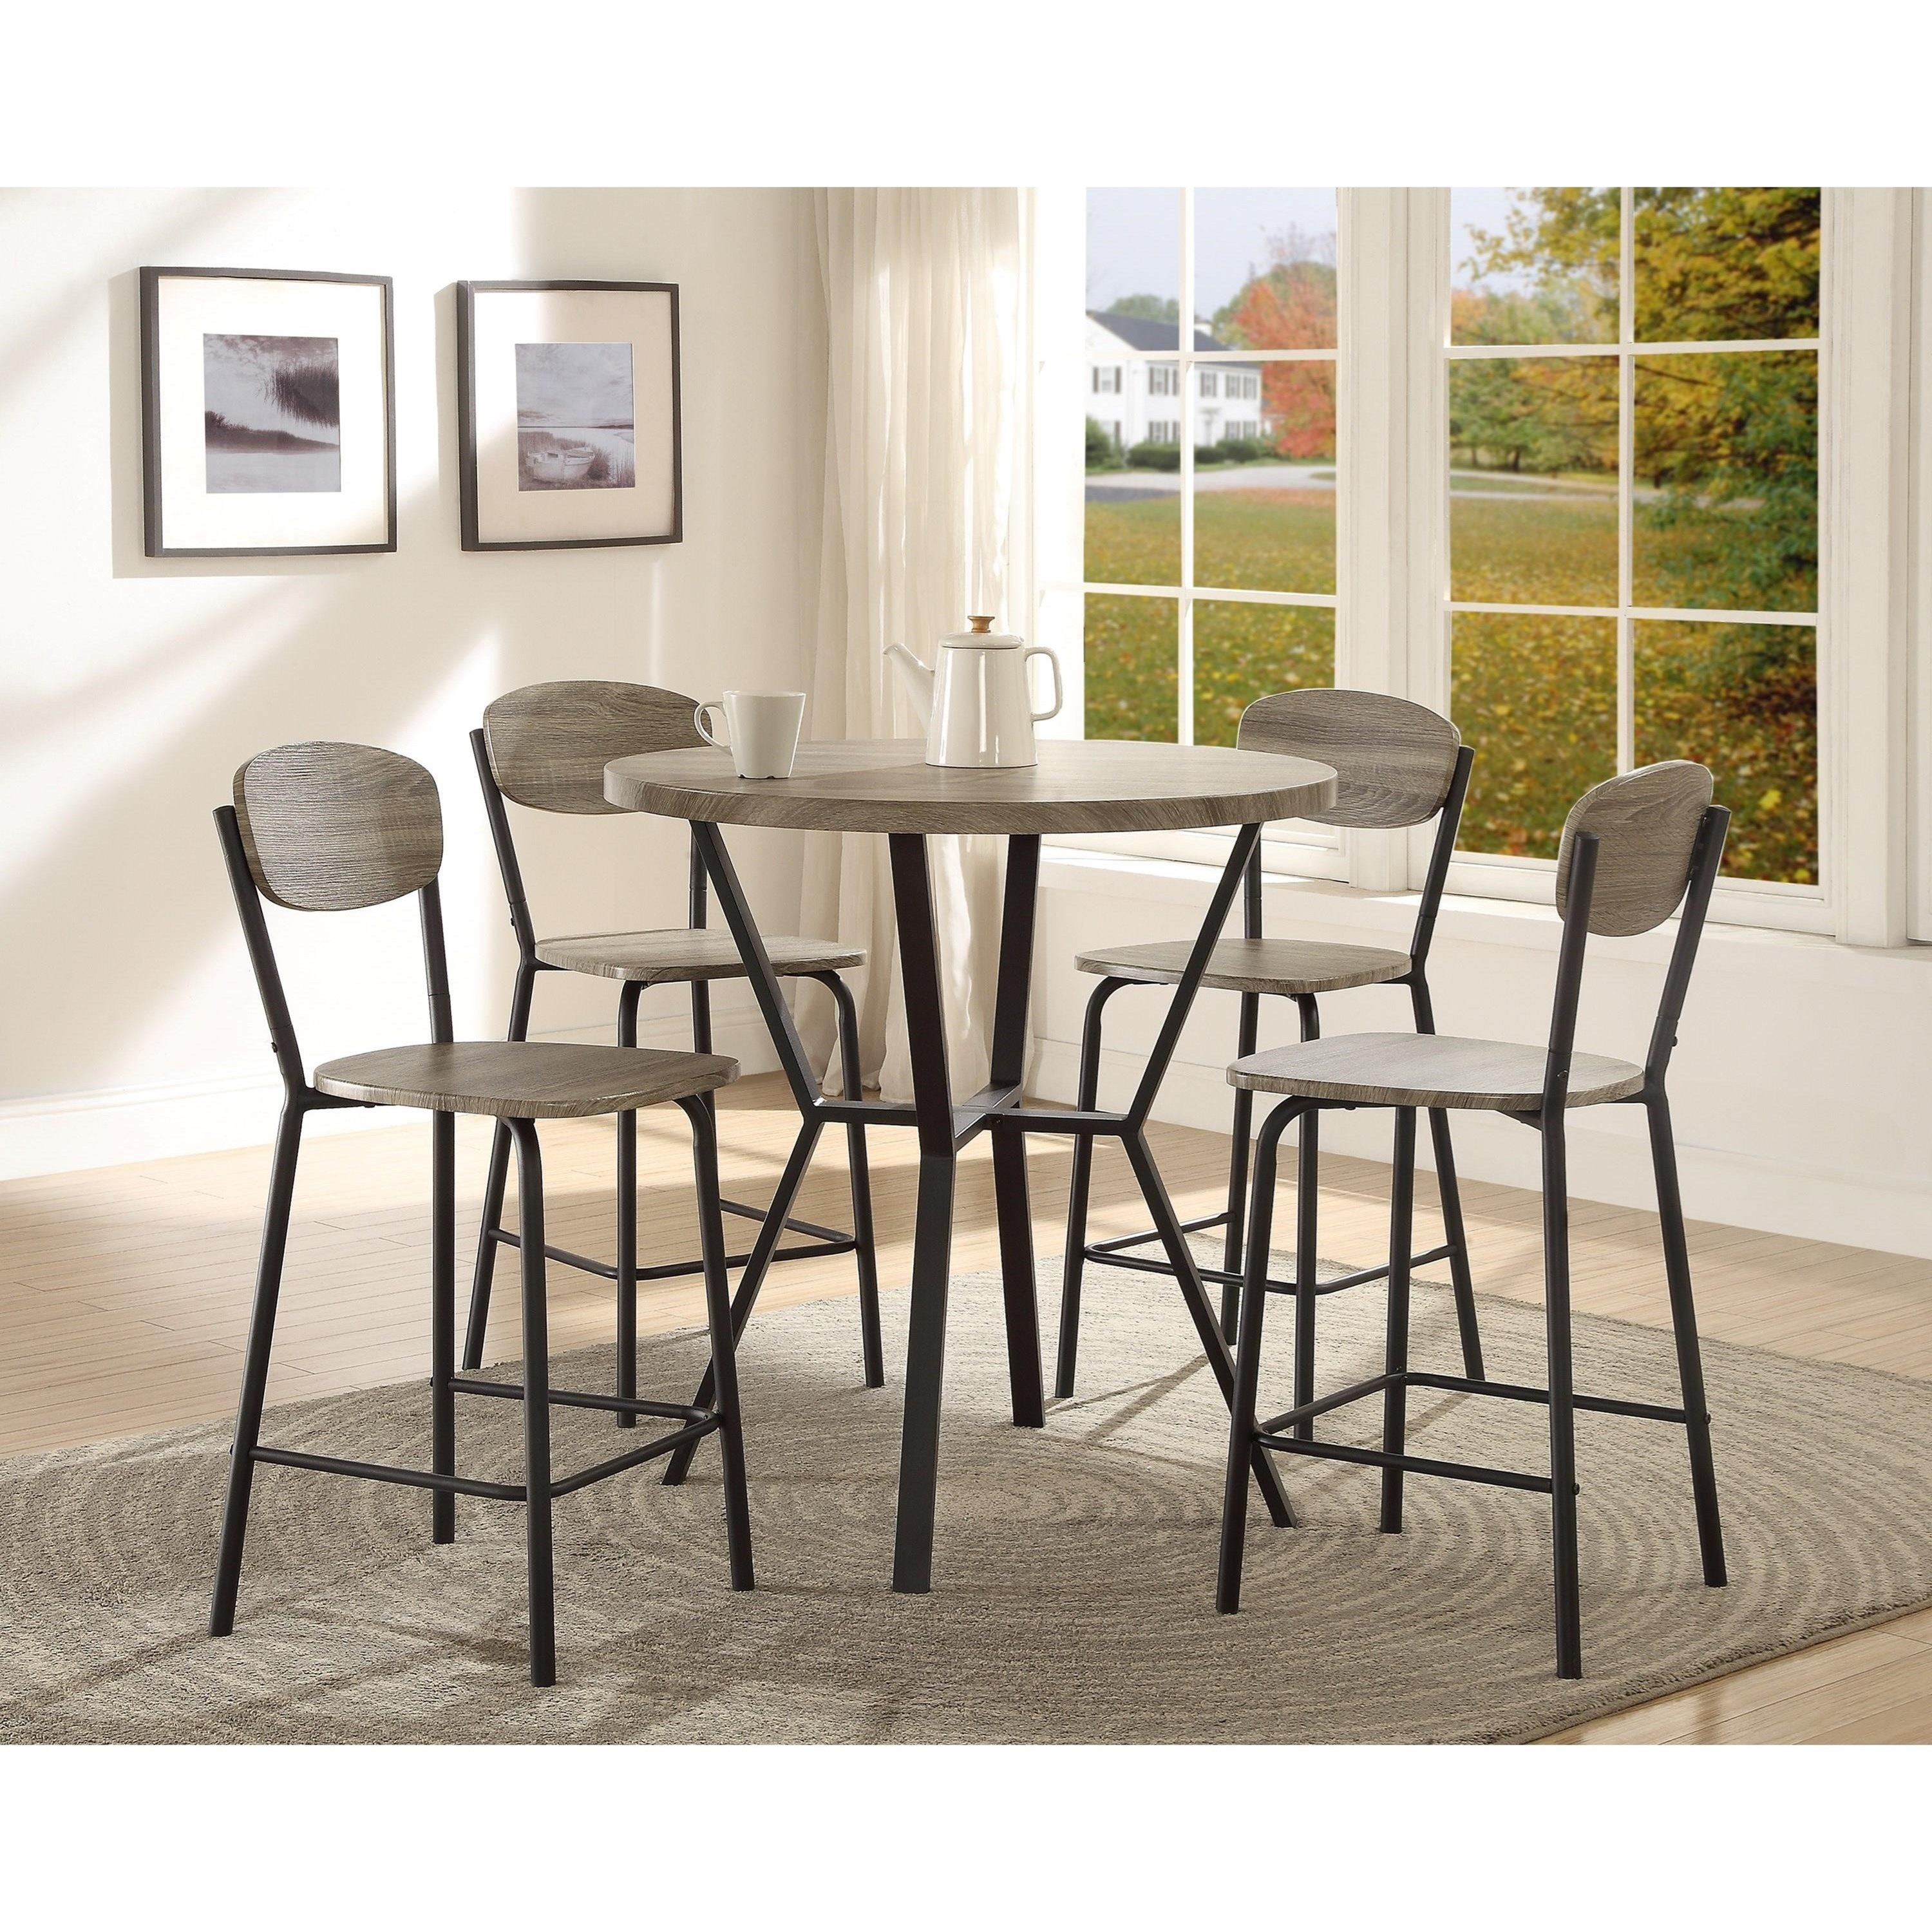 Blake 5 Piece Counter Height Dinette Set by Crown Mark at Northeast Factory Direct